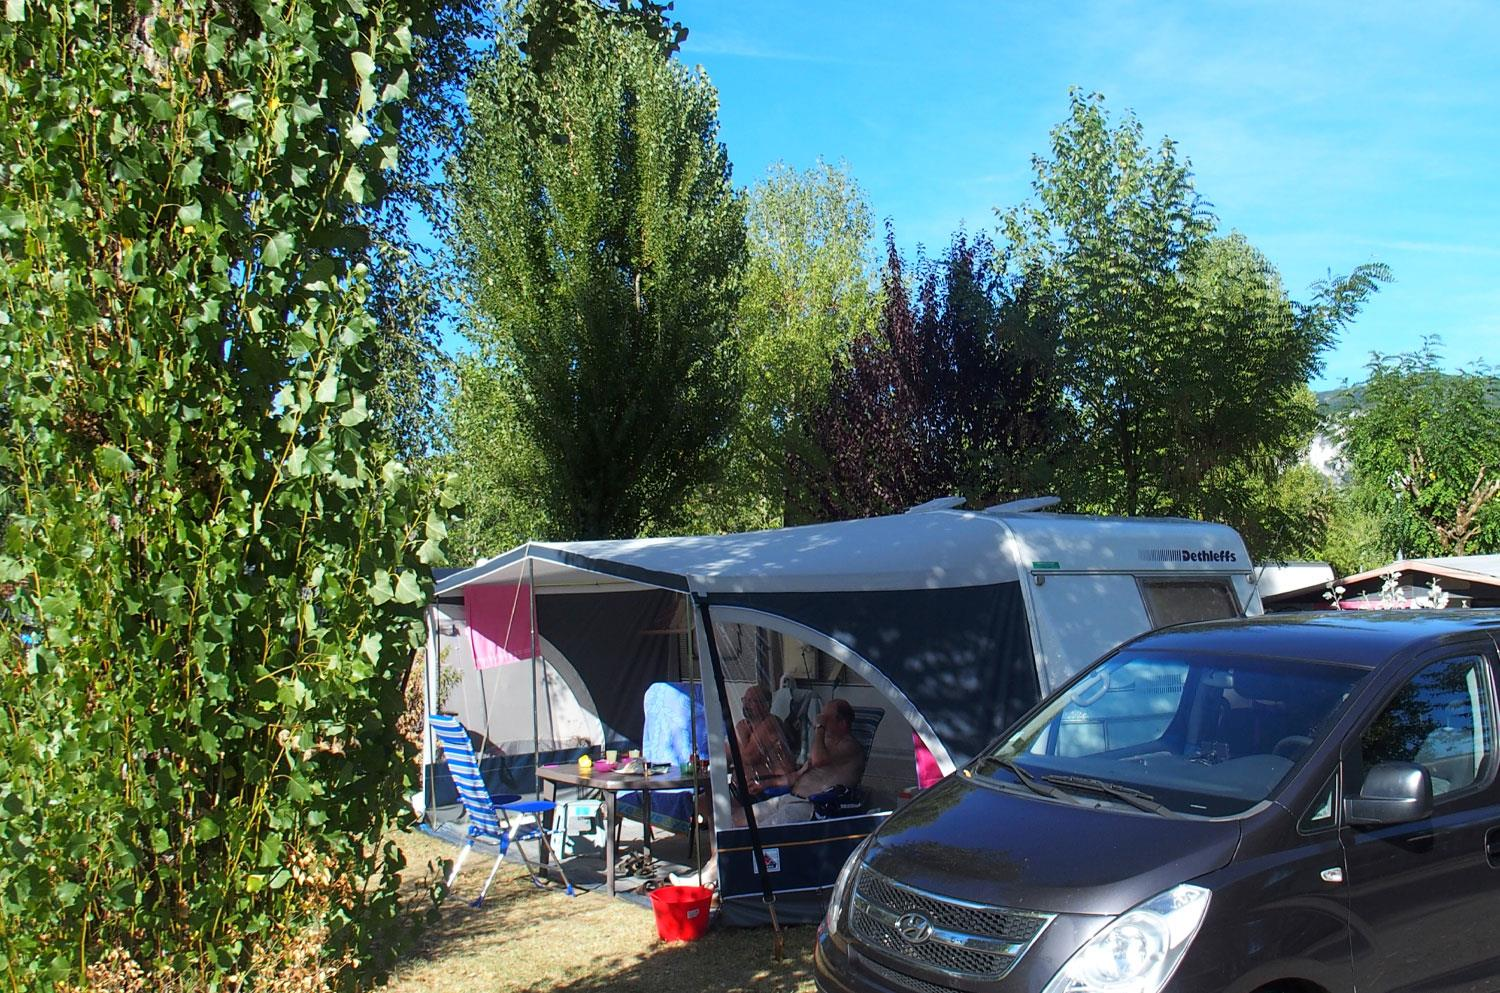 Pitch - Camping Place With Electricity 6A - Camping Ile de la Comtesse